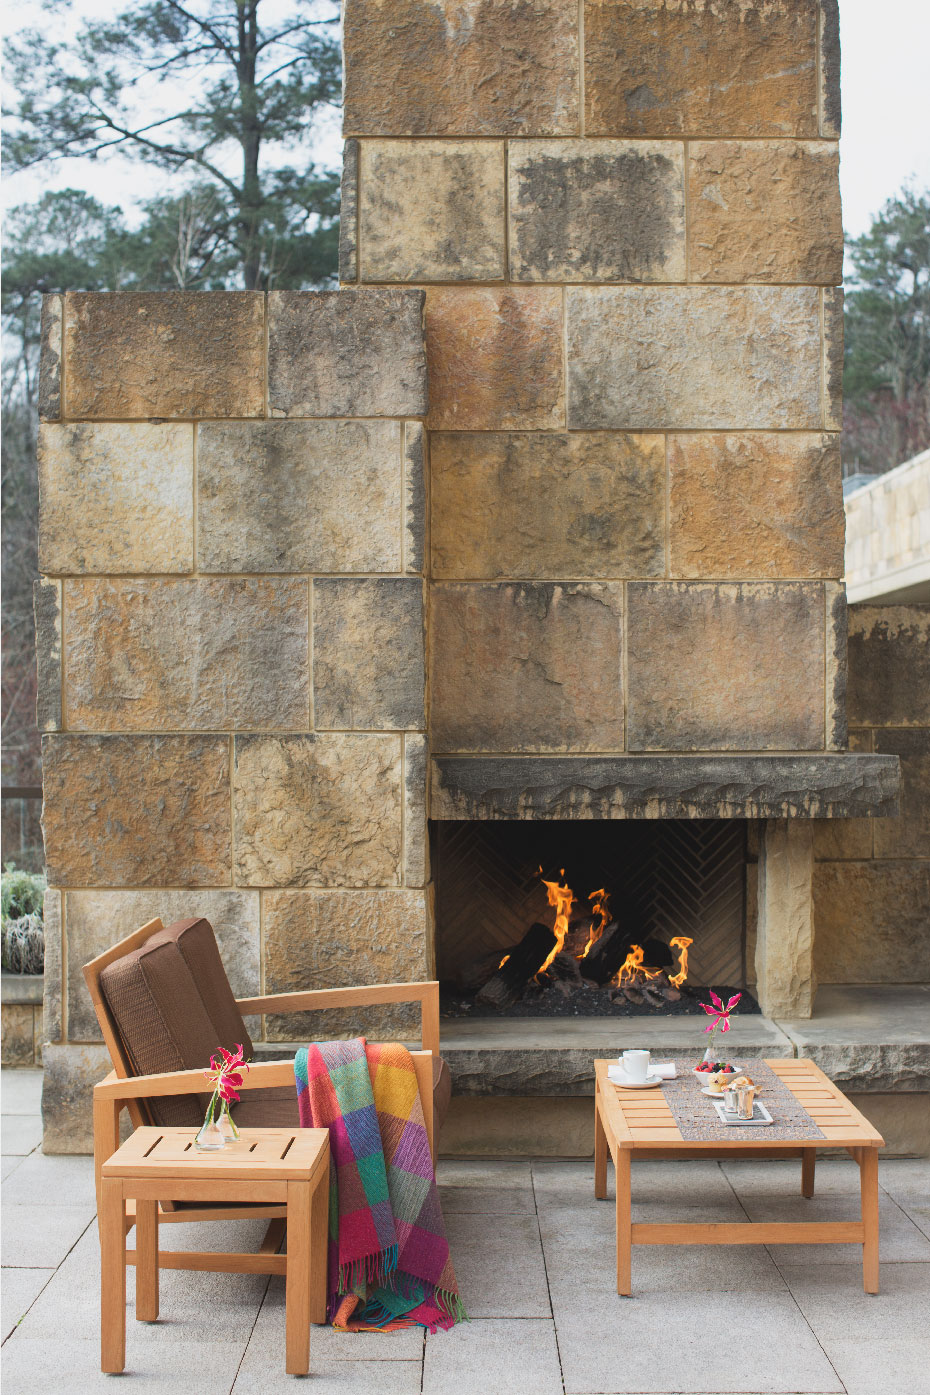 Stacey Van Berkel Photography I Outdoor fireplace with morning coffee and Avoca Ireland blanket I The Umstead Hotel and Spa I Cary, North Carolina